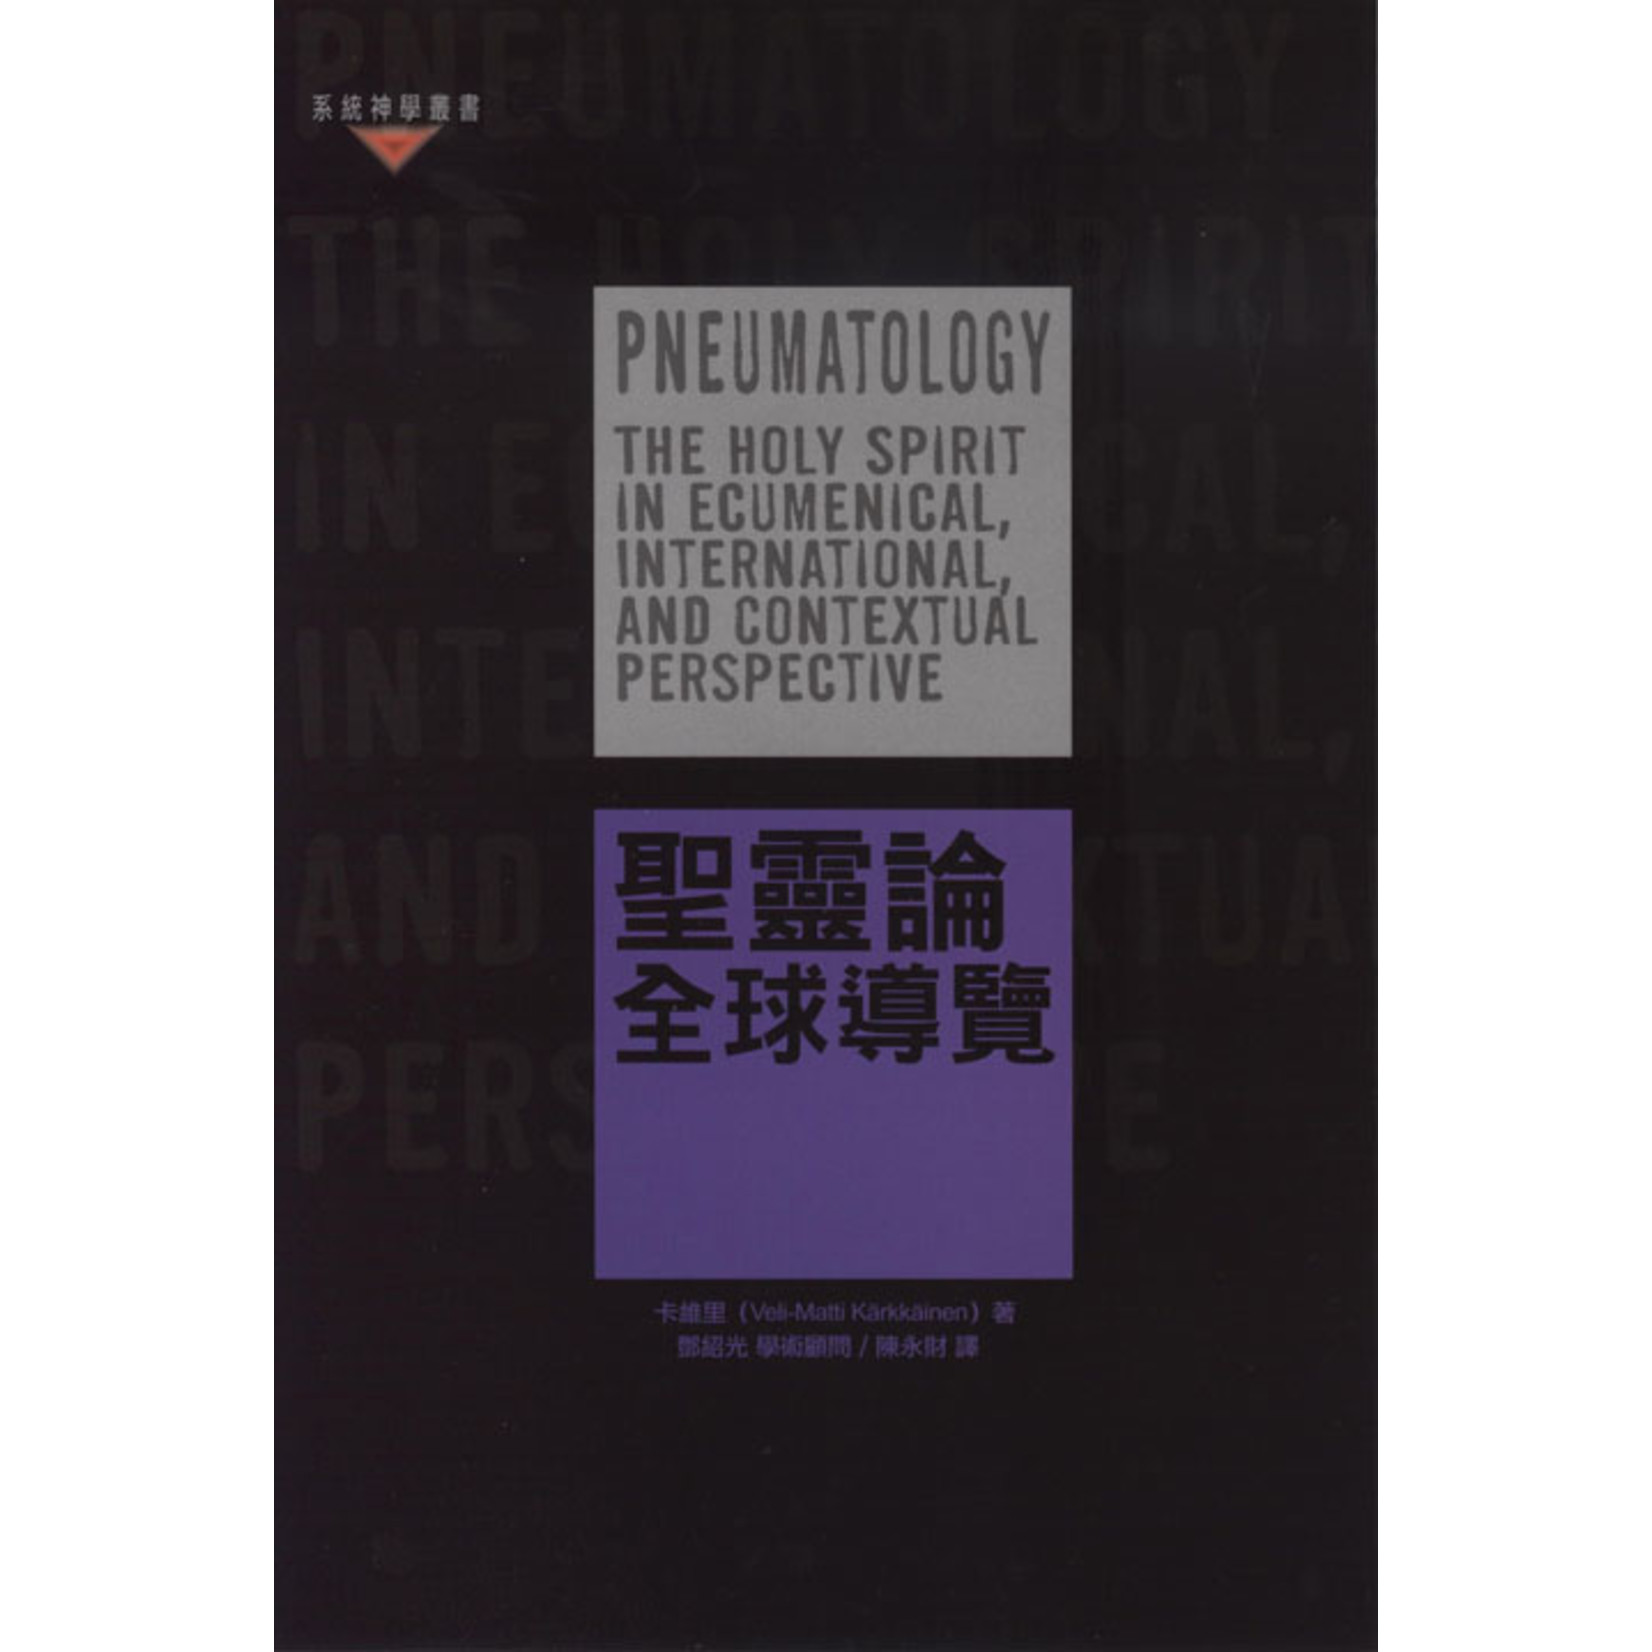 基道 Logos Book House 聖靈論:全球導覽 Pneumatology: The Holy Spirit in Ecumenical, International, and Contextual Perspective